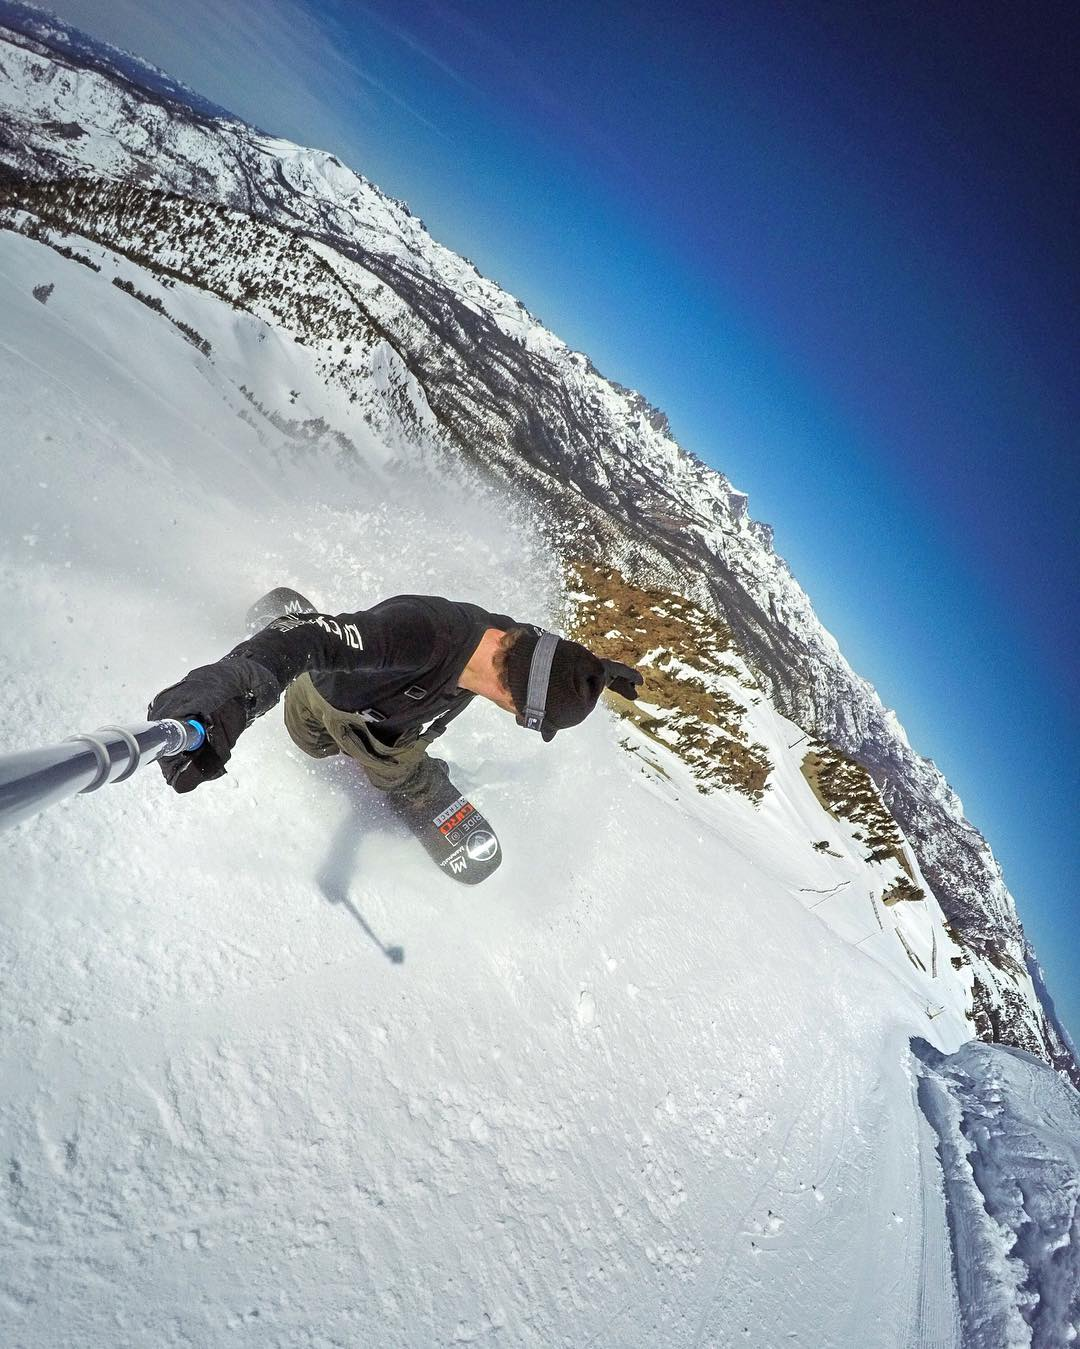 @spencerwhiting getting his spring turns in at @mammothmountain. GoPro HERO4 | GoPole Reach @themayhemprojects #gopro #gopole #gopolereach #snowboarding #mammothmountain